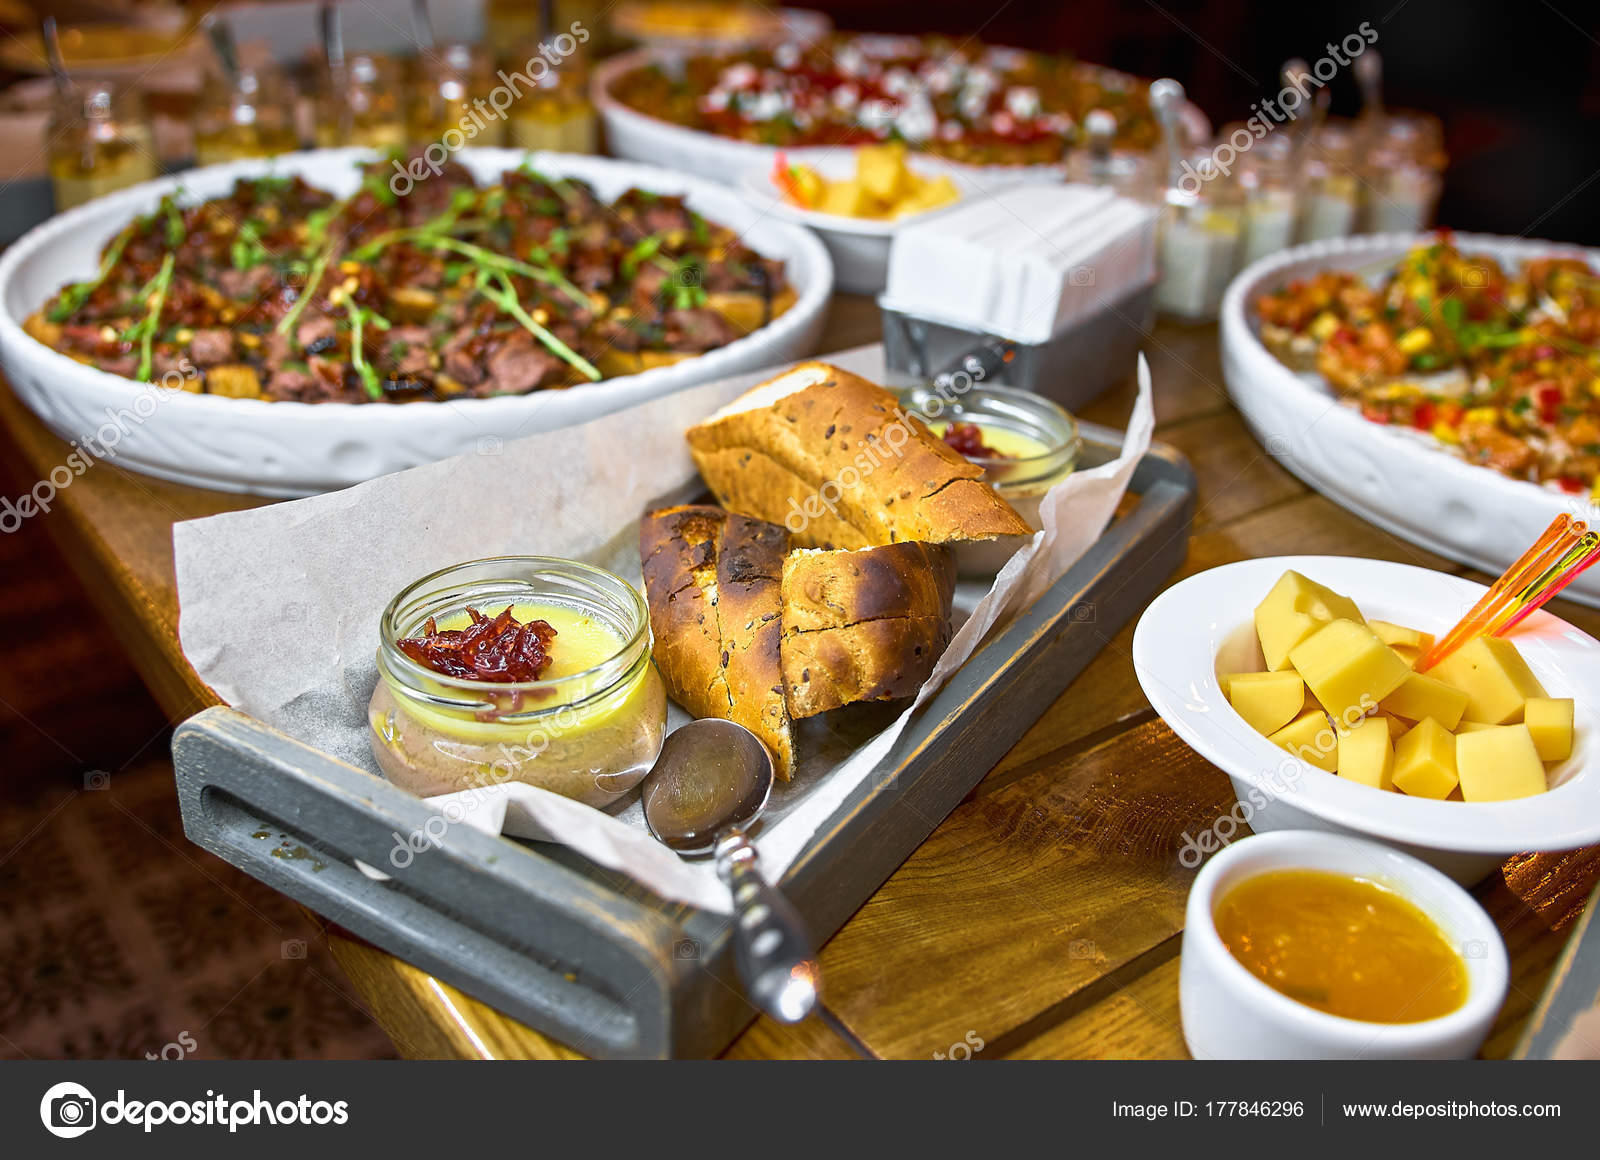 Buffet Table With Bruschetta Appetizers And Different Sauces Hummus Beef Pate Avocado Tomatoes On A Wooden Rustic